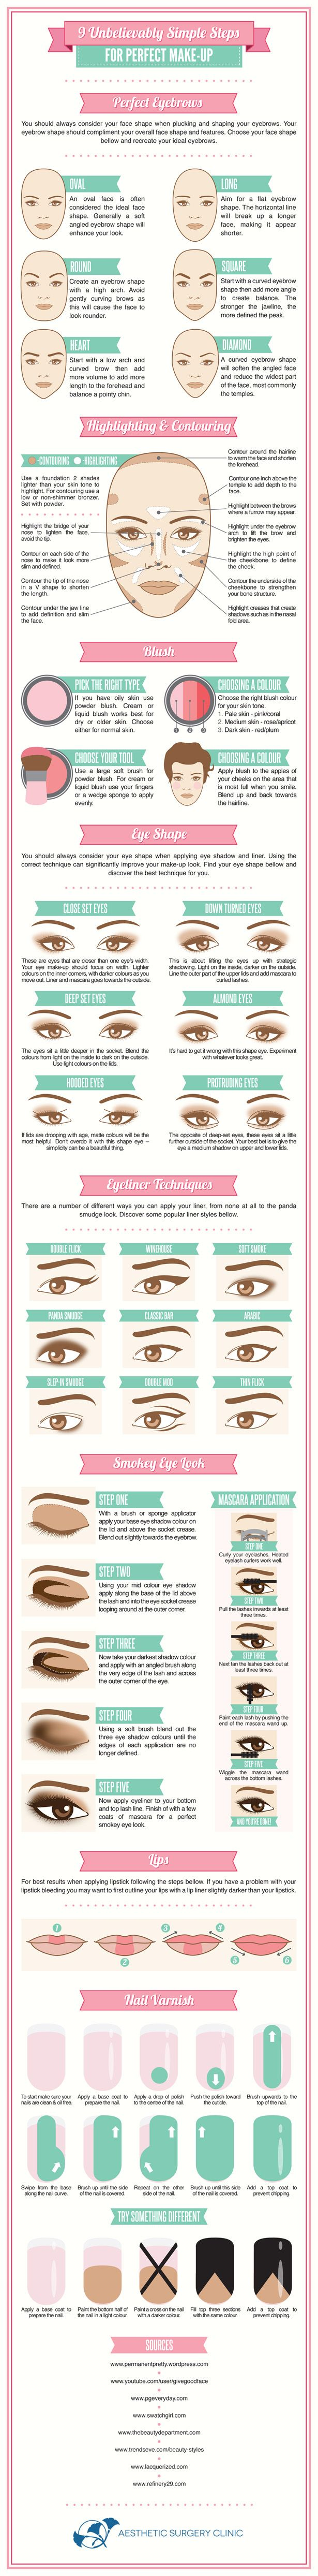 Infographic helps you master the perfect makeup look infographic